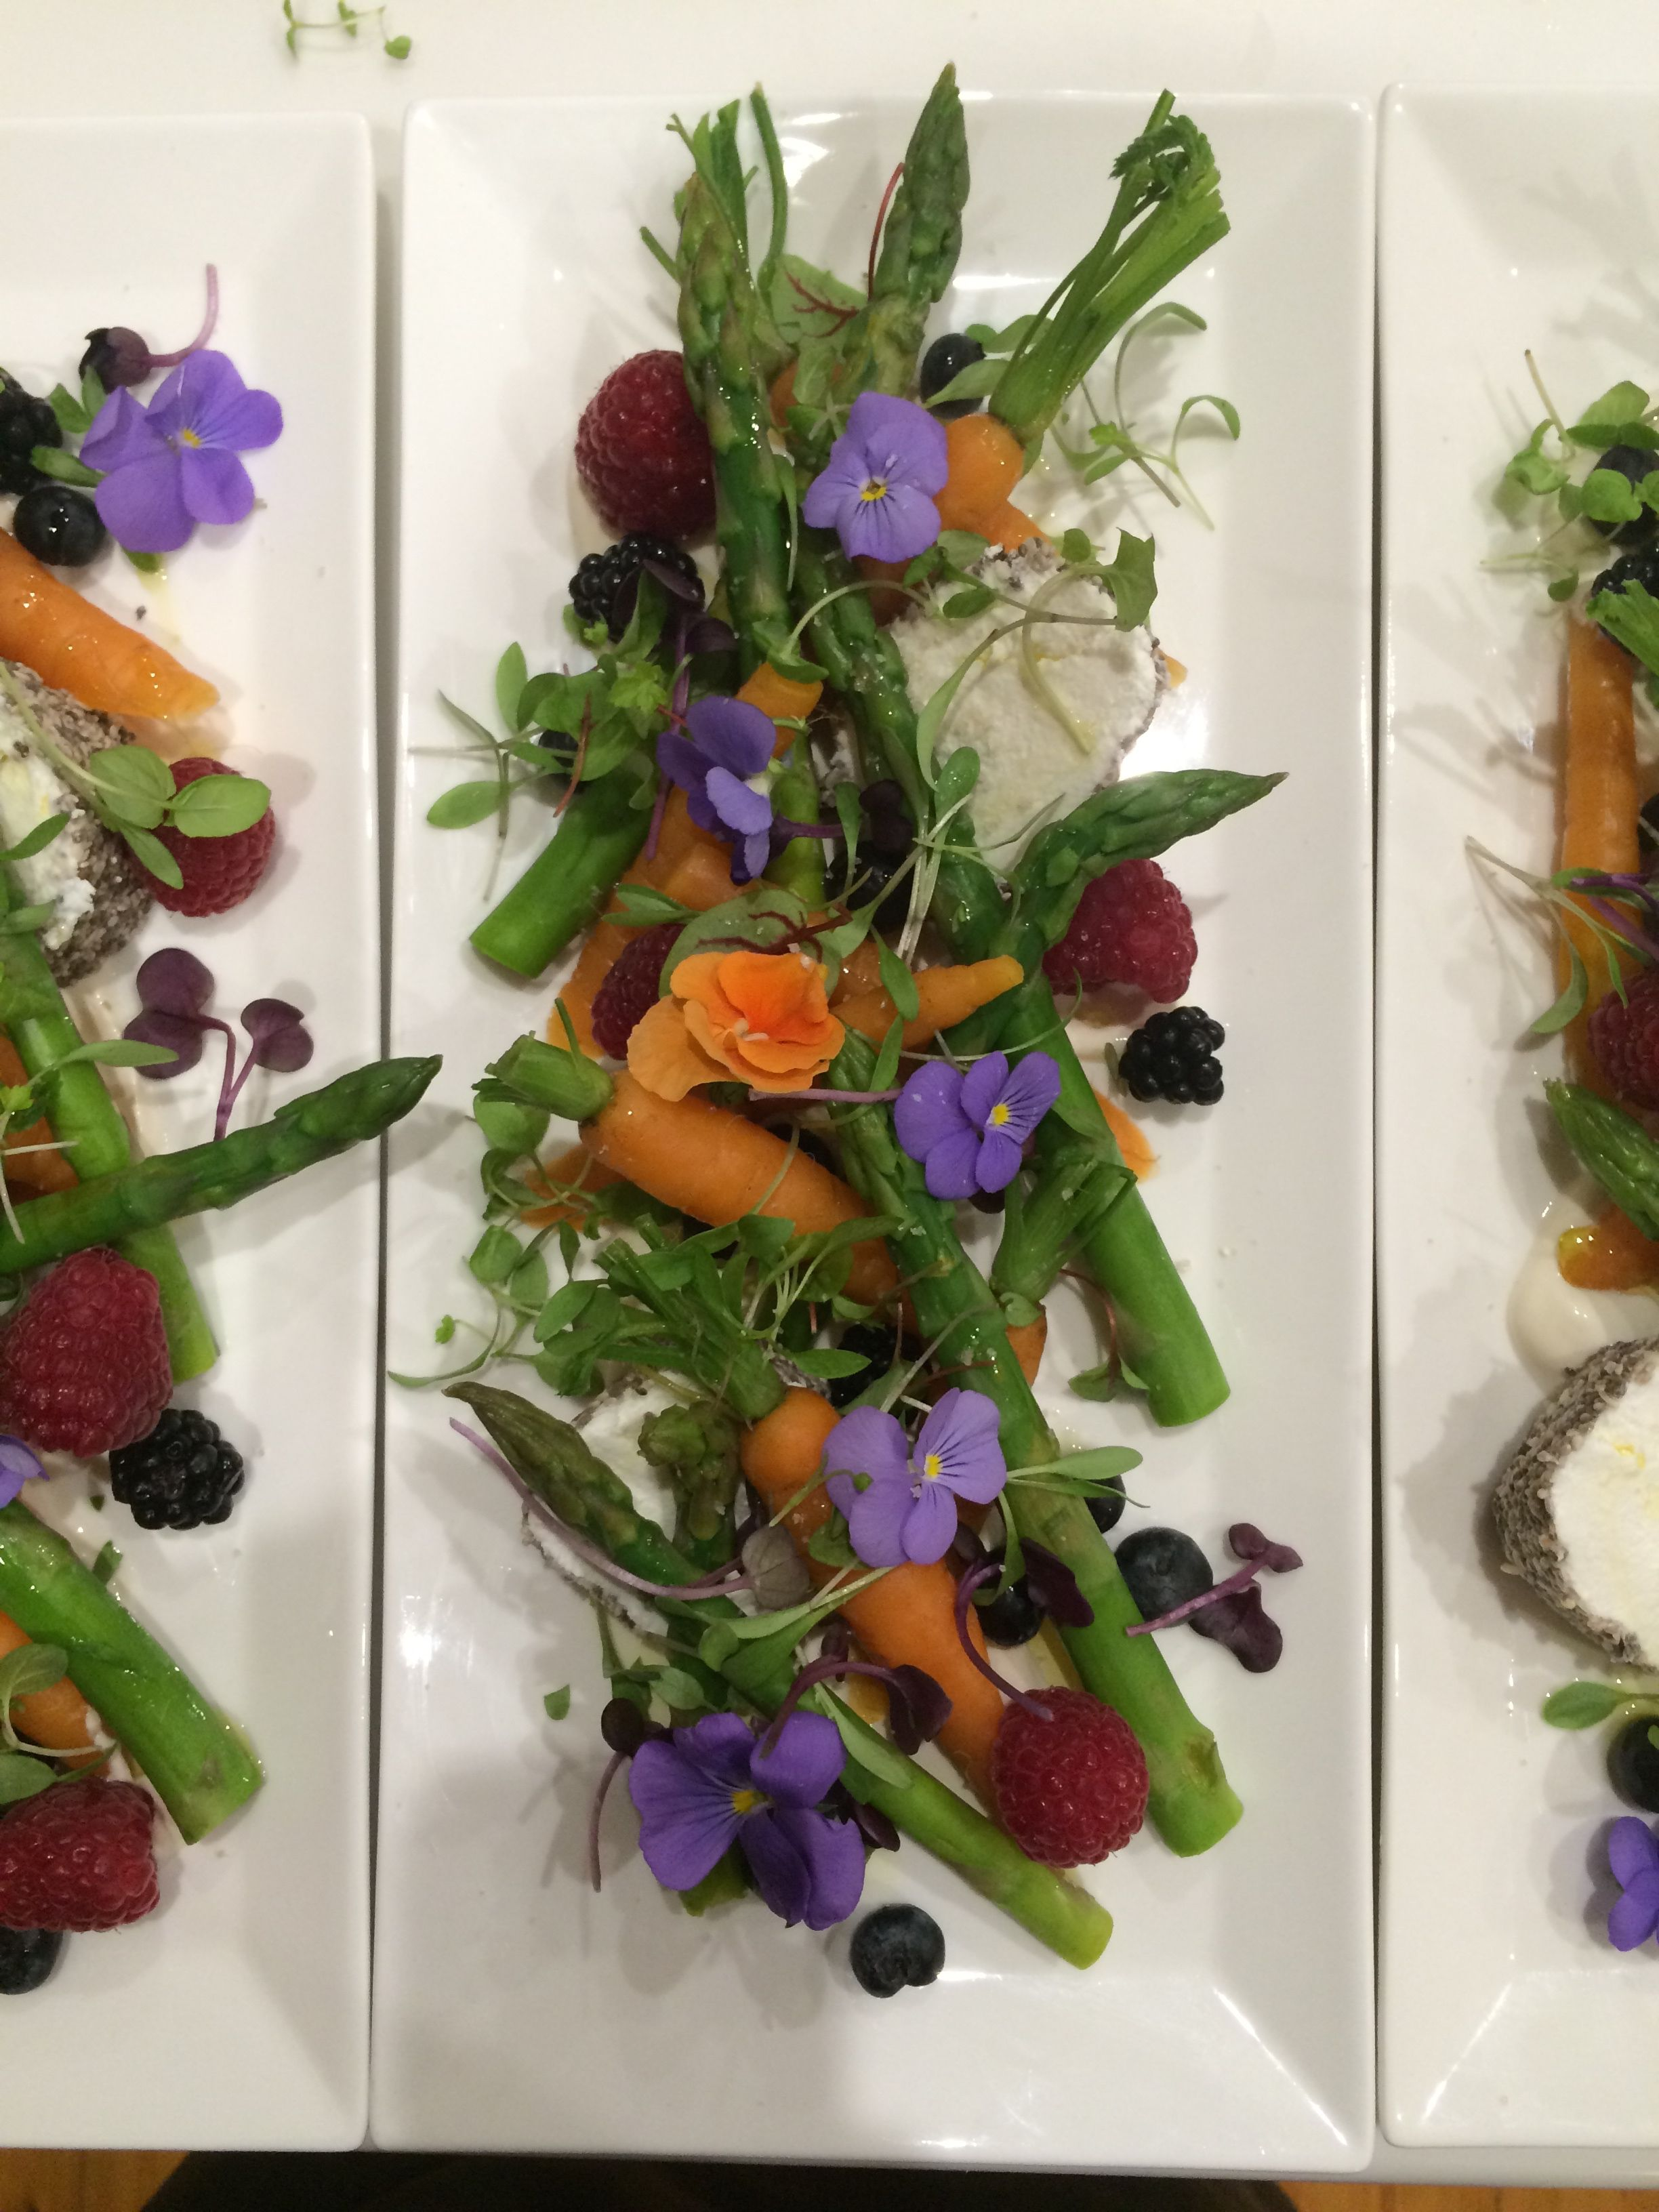 Asparagus Baby Carrot Berry Salad Decorated With Edible Flowers By Creative Hunger Edible Flowers